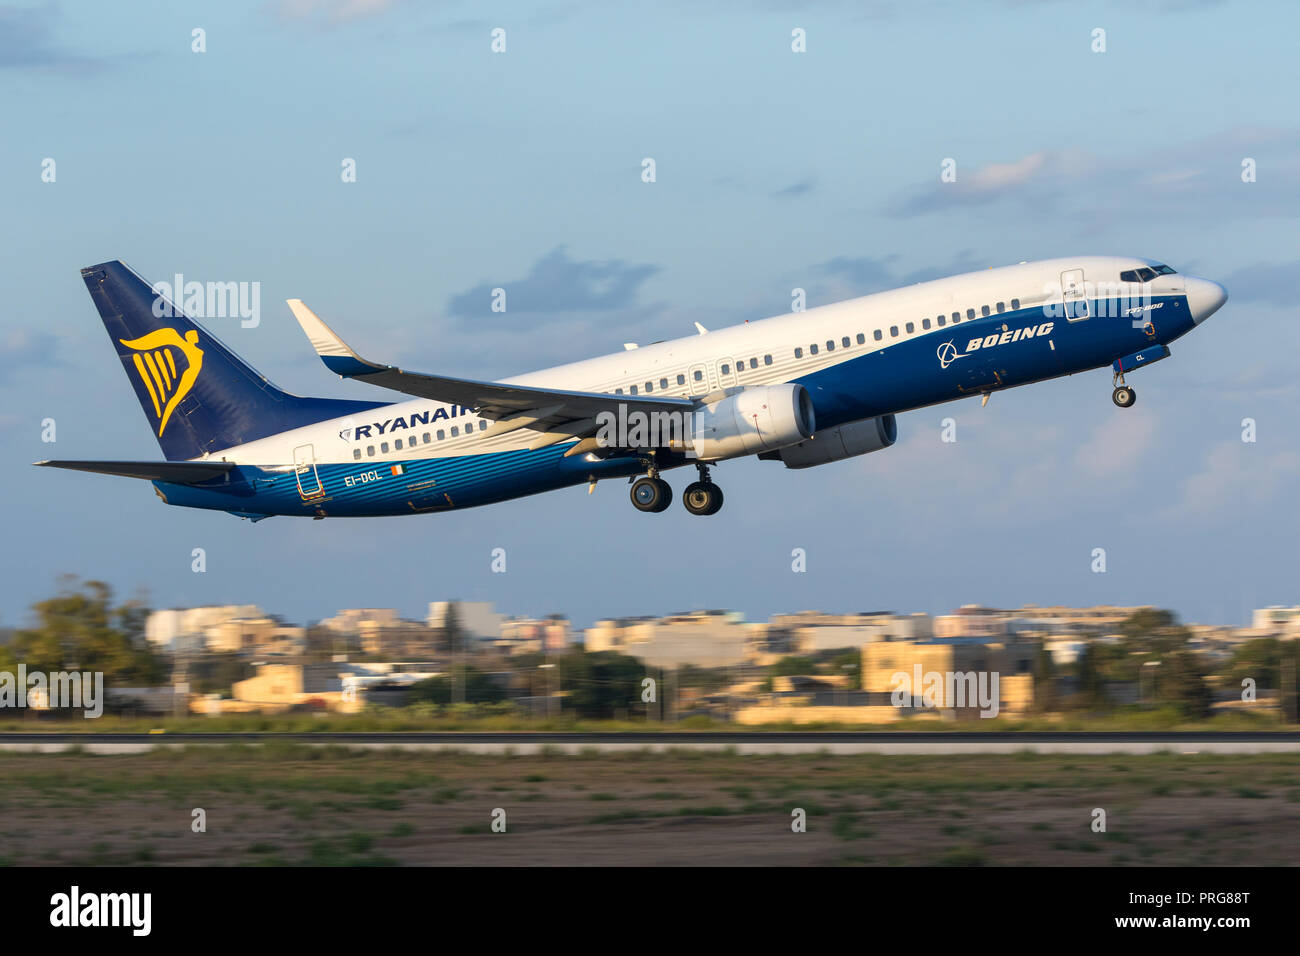 Ryanair Boeing 737-8AS [REG: EI-DCL] in special Boeing colors, taking off in the late evening. - Stock Image